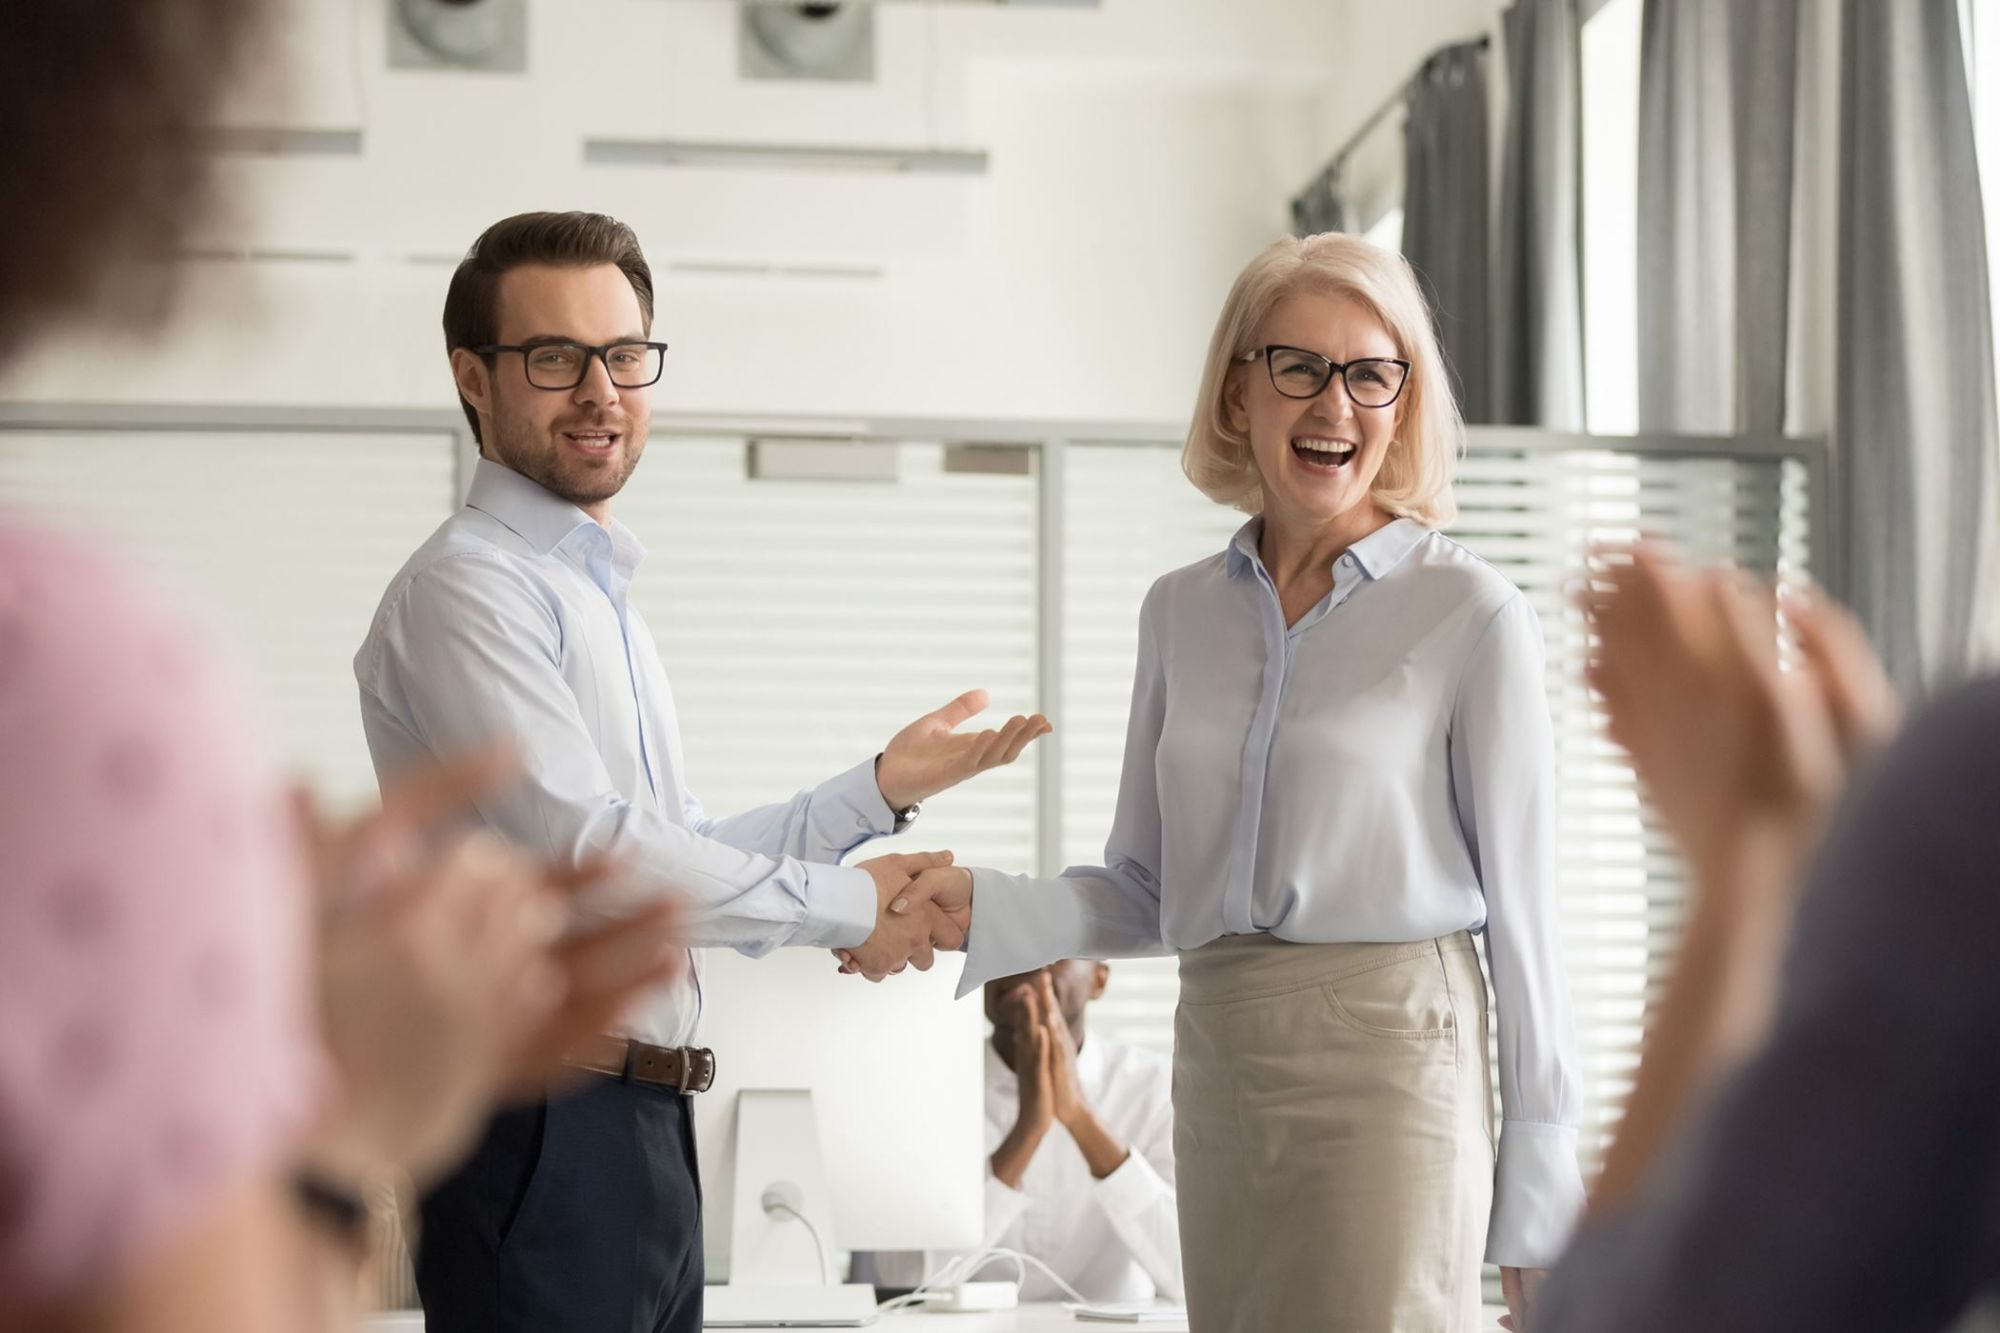 Why Gratitude Makes Leaders More Effective